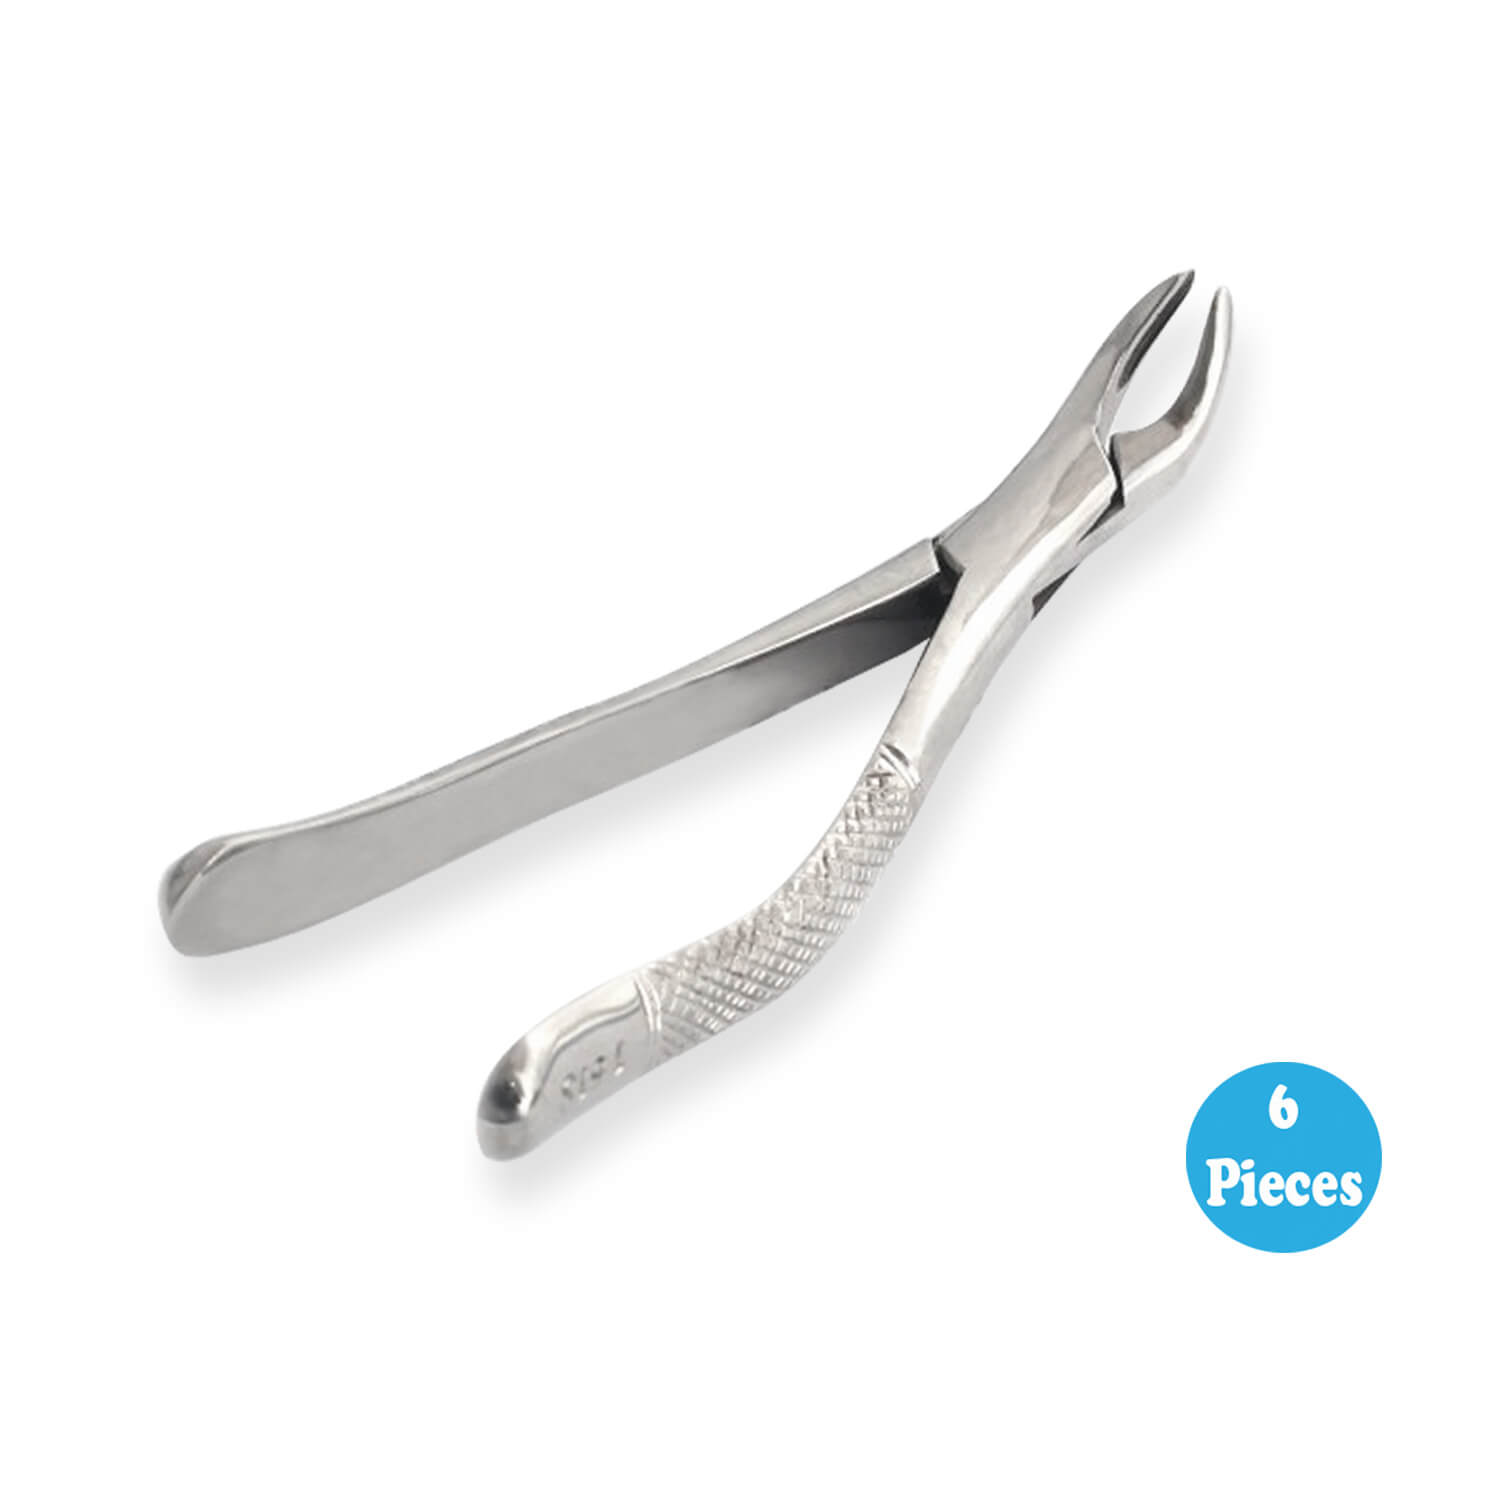 6 Pedo Extracting forceps Dental Surgical Instrument 151S